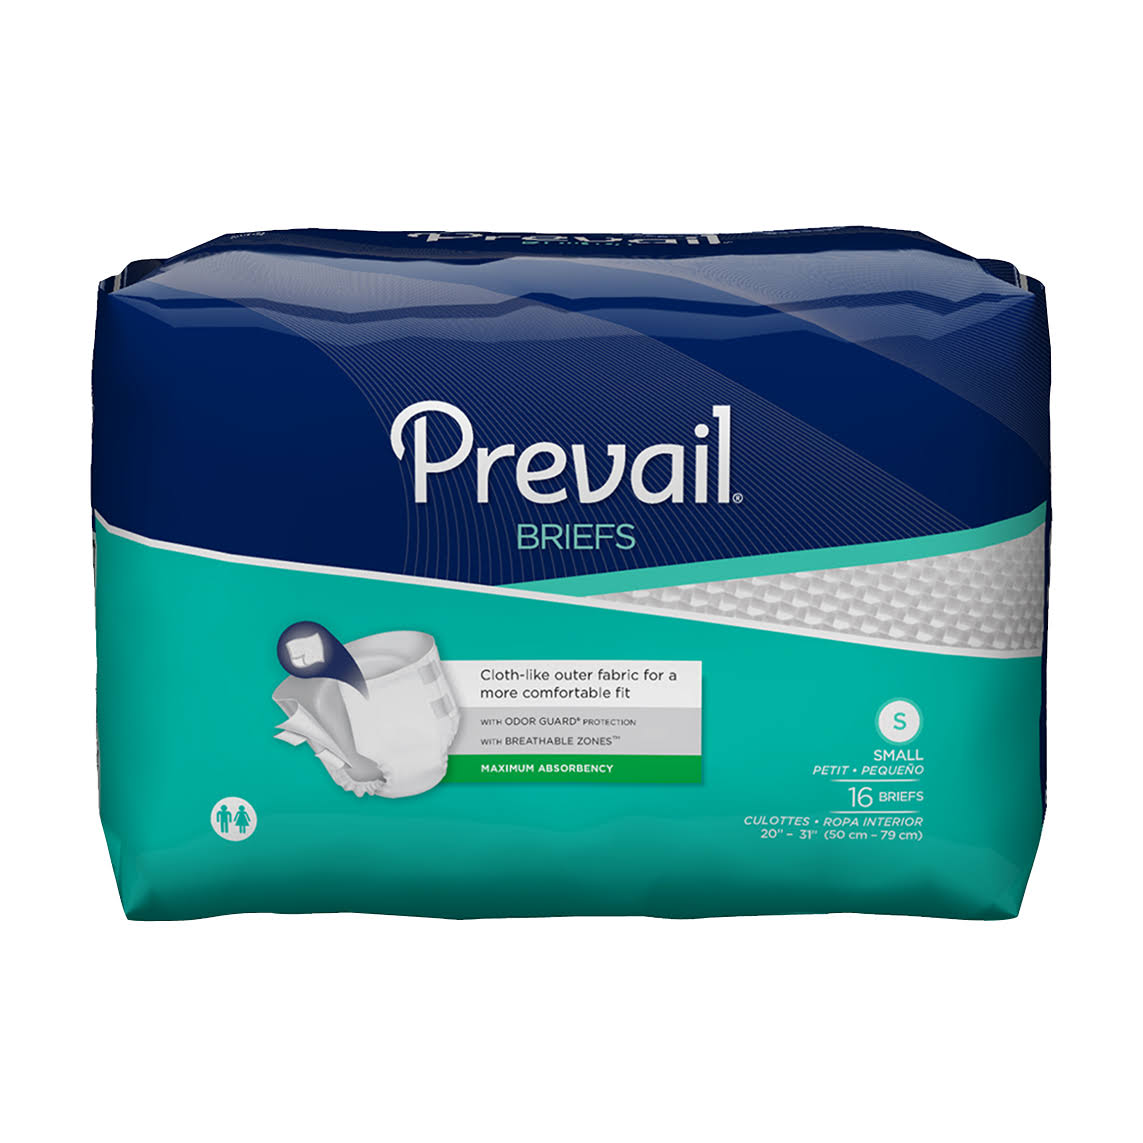 Prevail Maximum Absorbency Adult Briefs - Small, 16ct